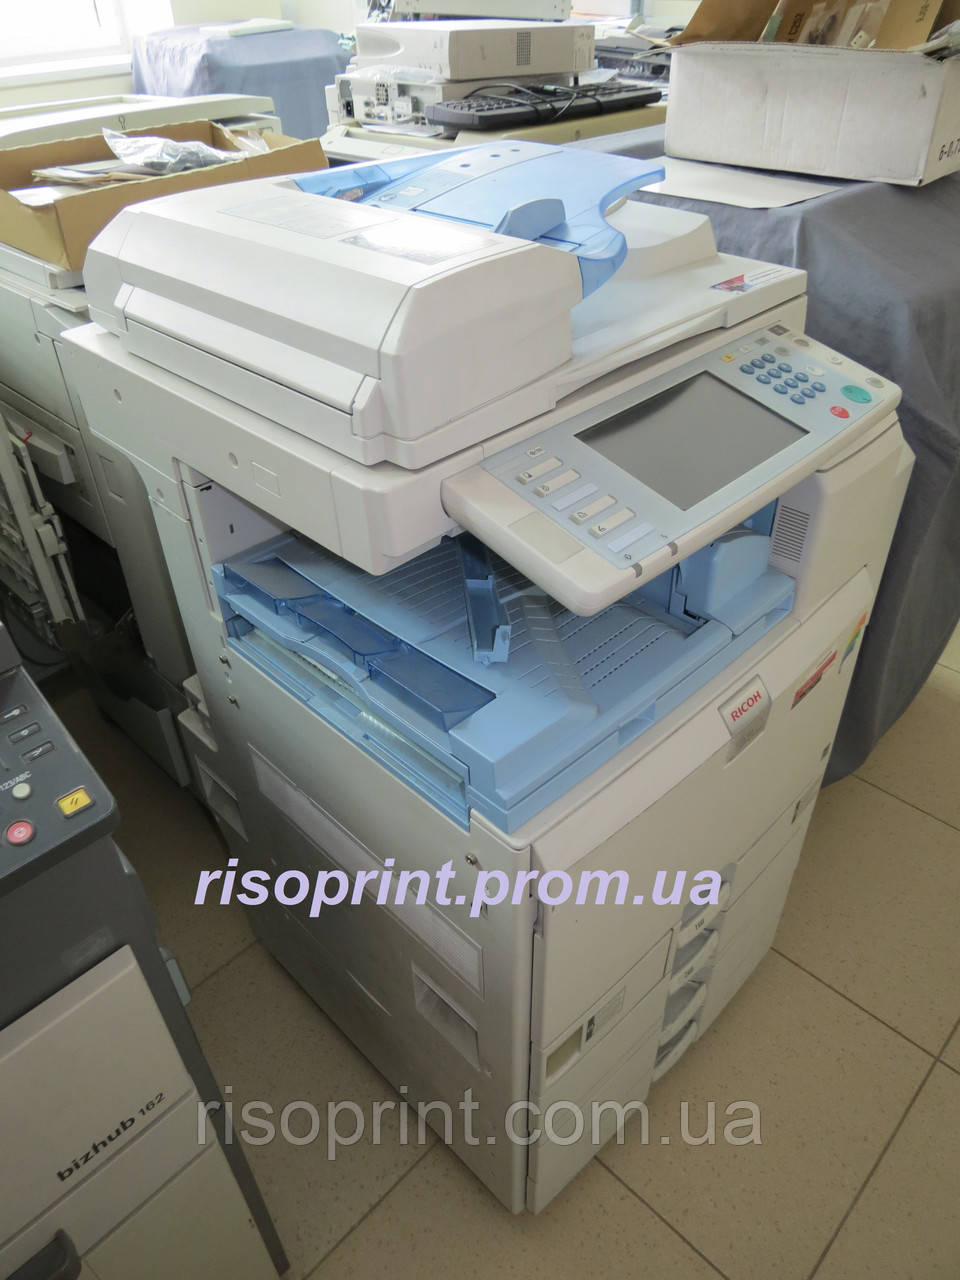 Ricoh Aficio  MP C3300 б/у